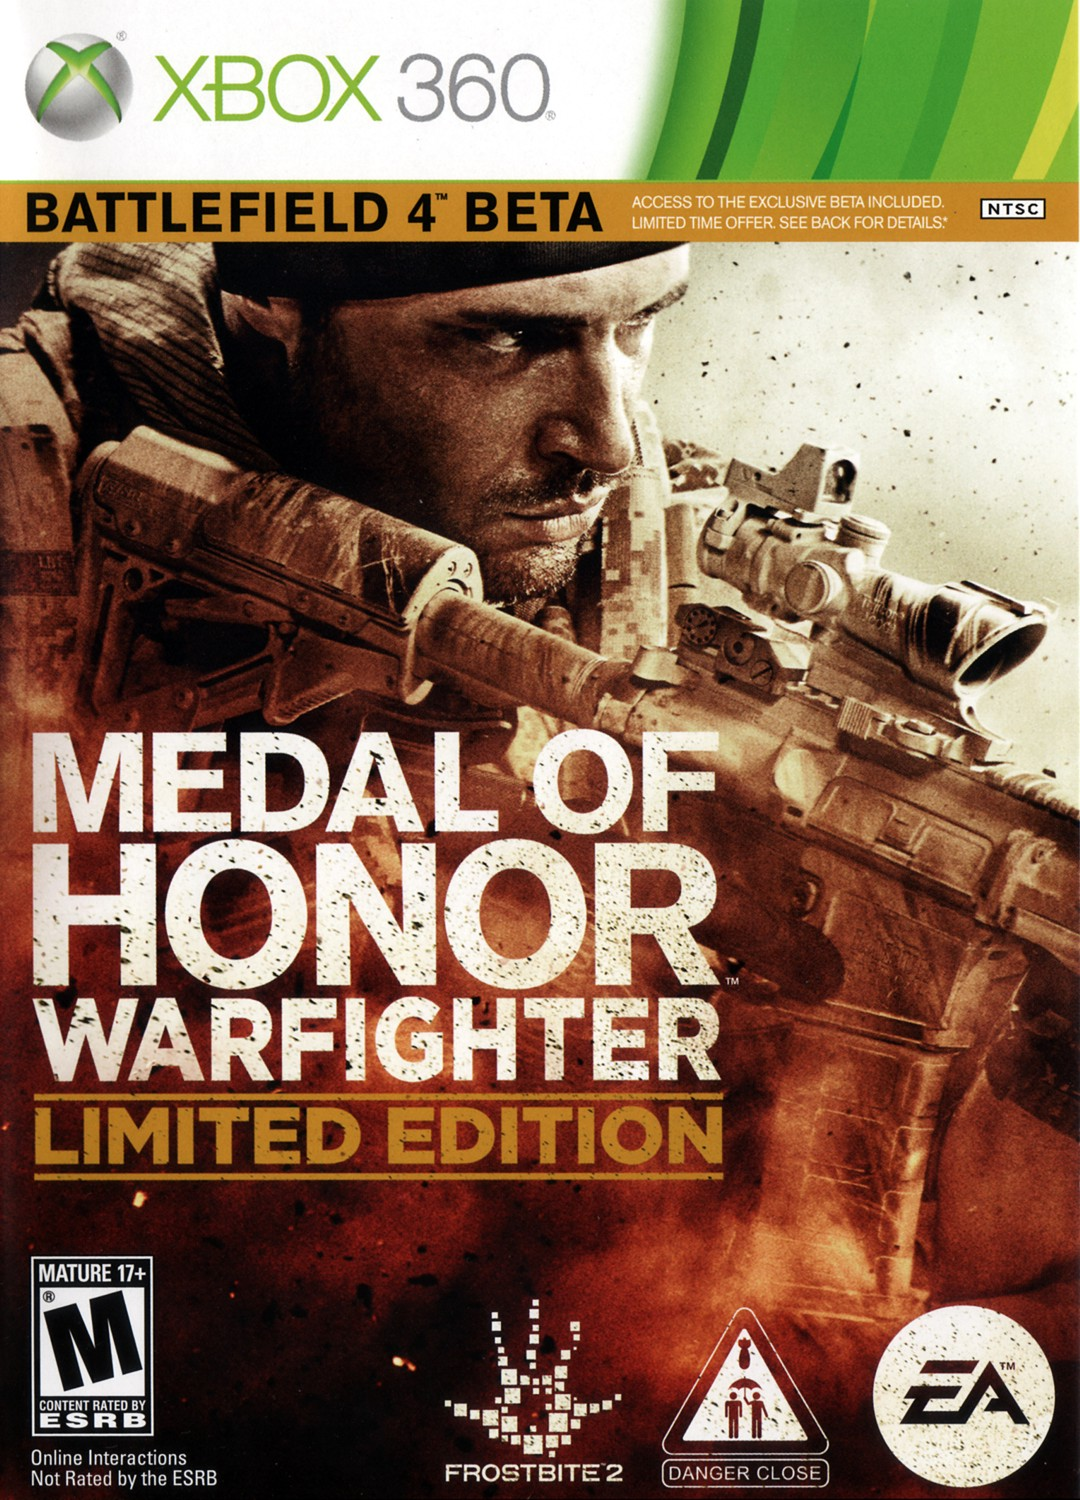 MEDAL OF HONOR: WARFIGHTER LIMITED EDITION - X360